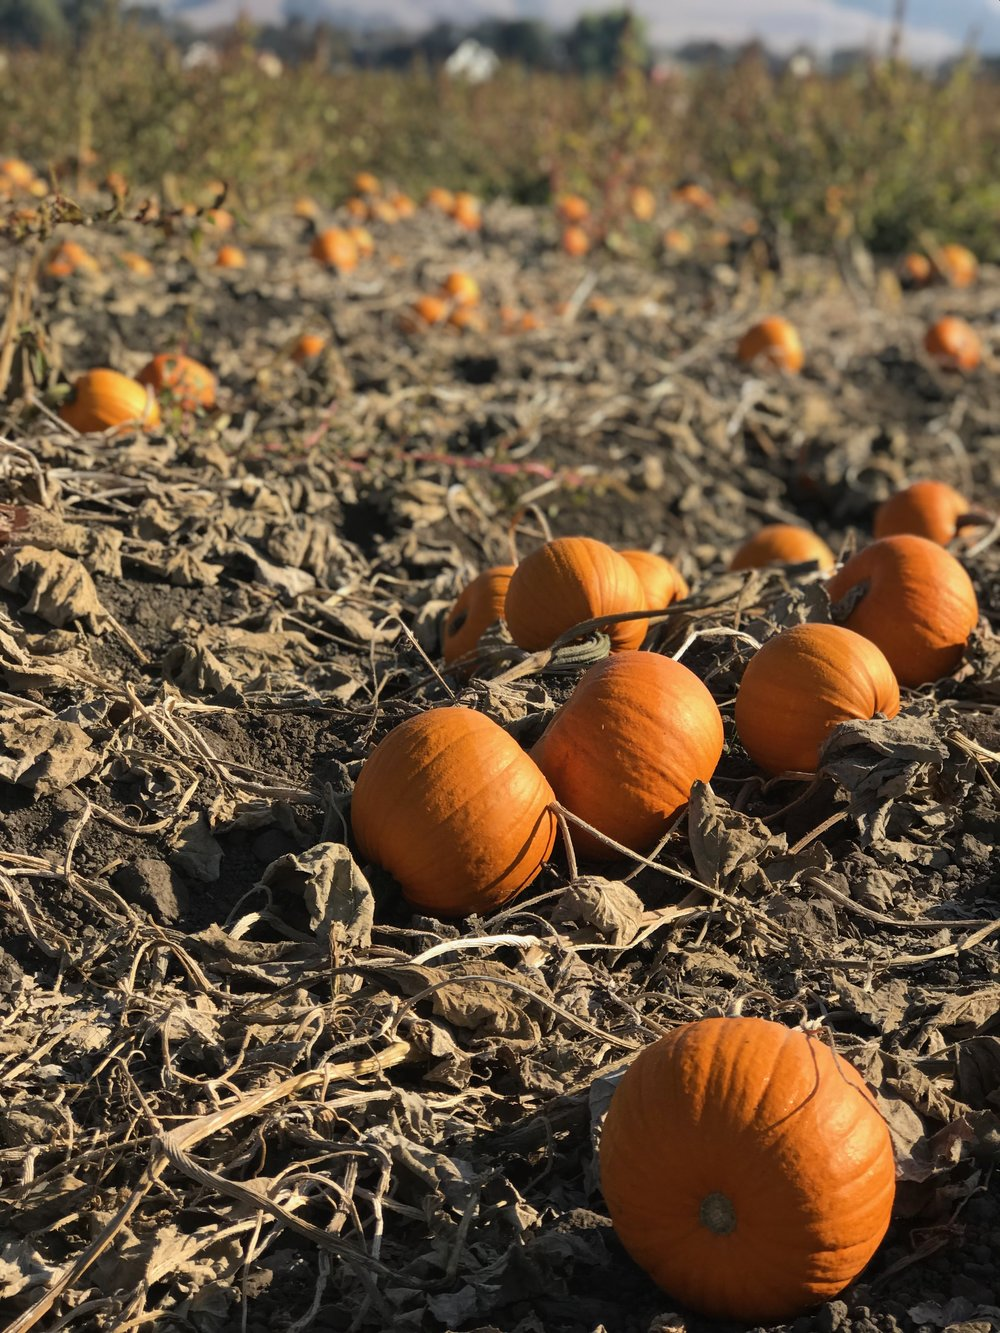 Pumpkins in the Field.JPG